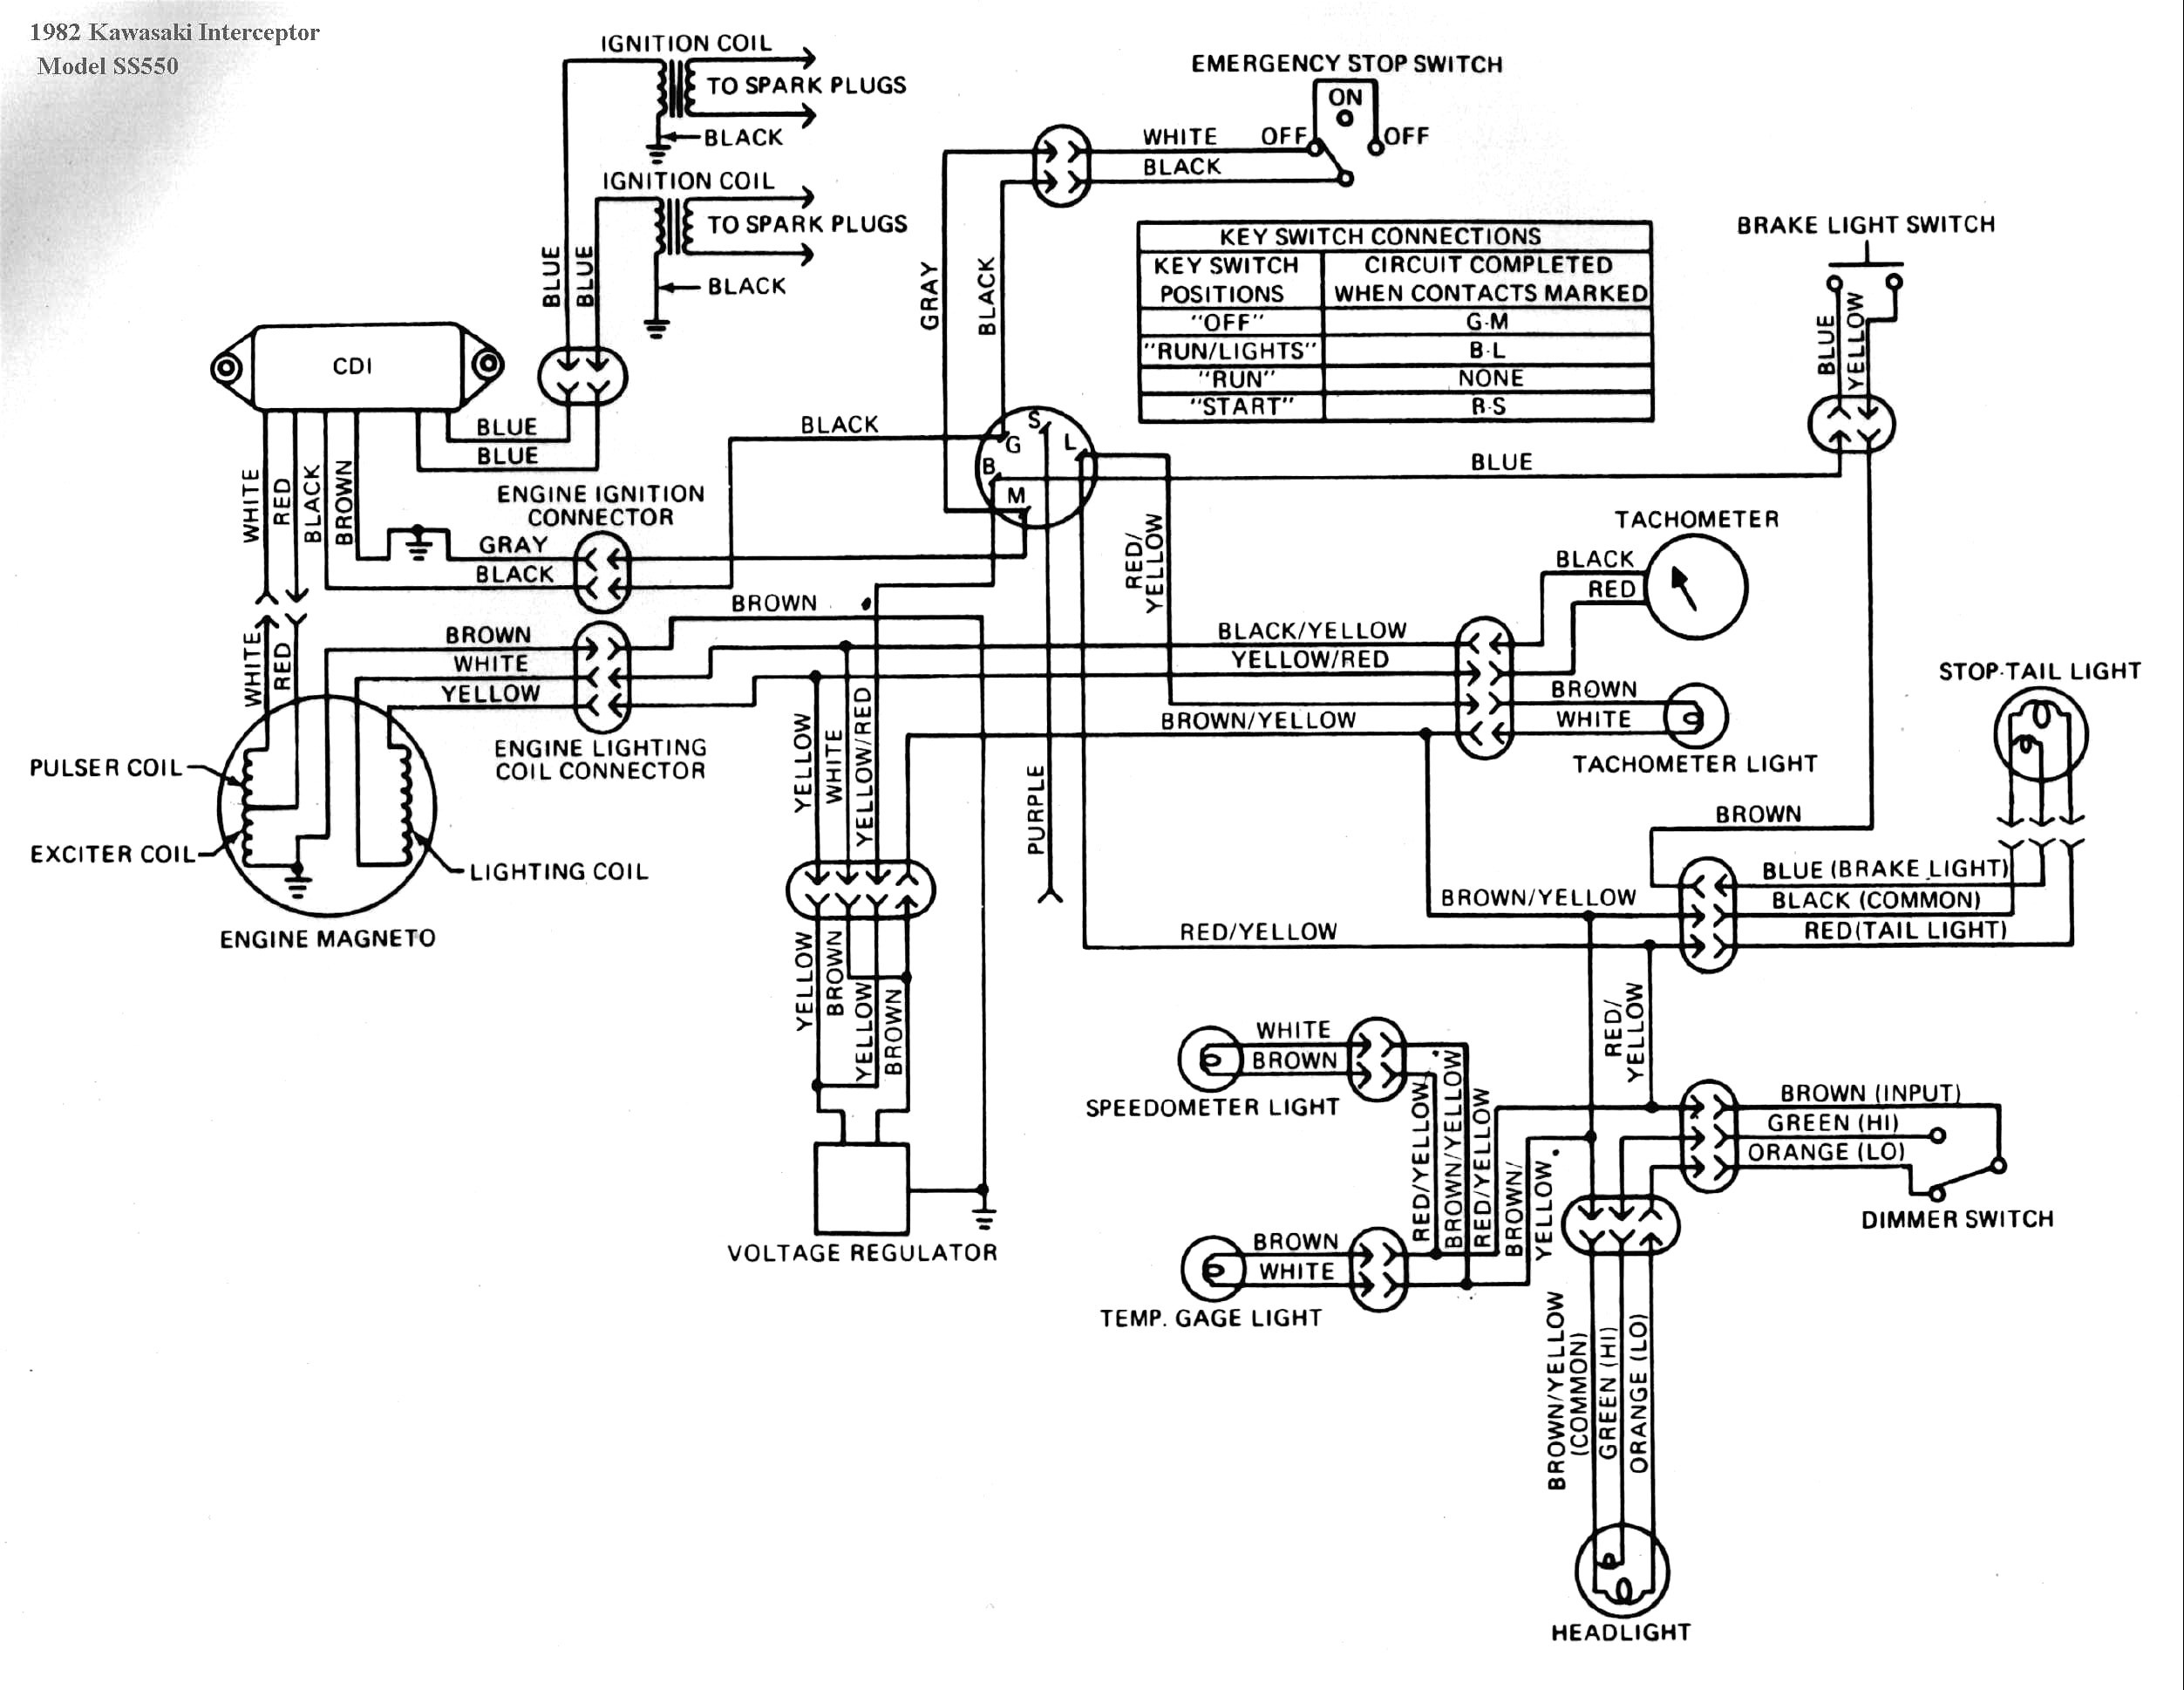 Kawasaki 750 Jet Ski Wiring Diagram Library. Starter Wiring Diagram Kawasaki Klr Trusted Diagrams \u2022. Kawasaki. 2006 Kawasaki Klr 650 Wiring Diagram At Scoala.co